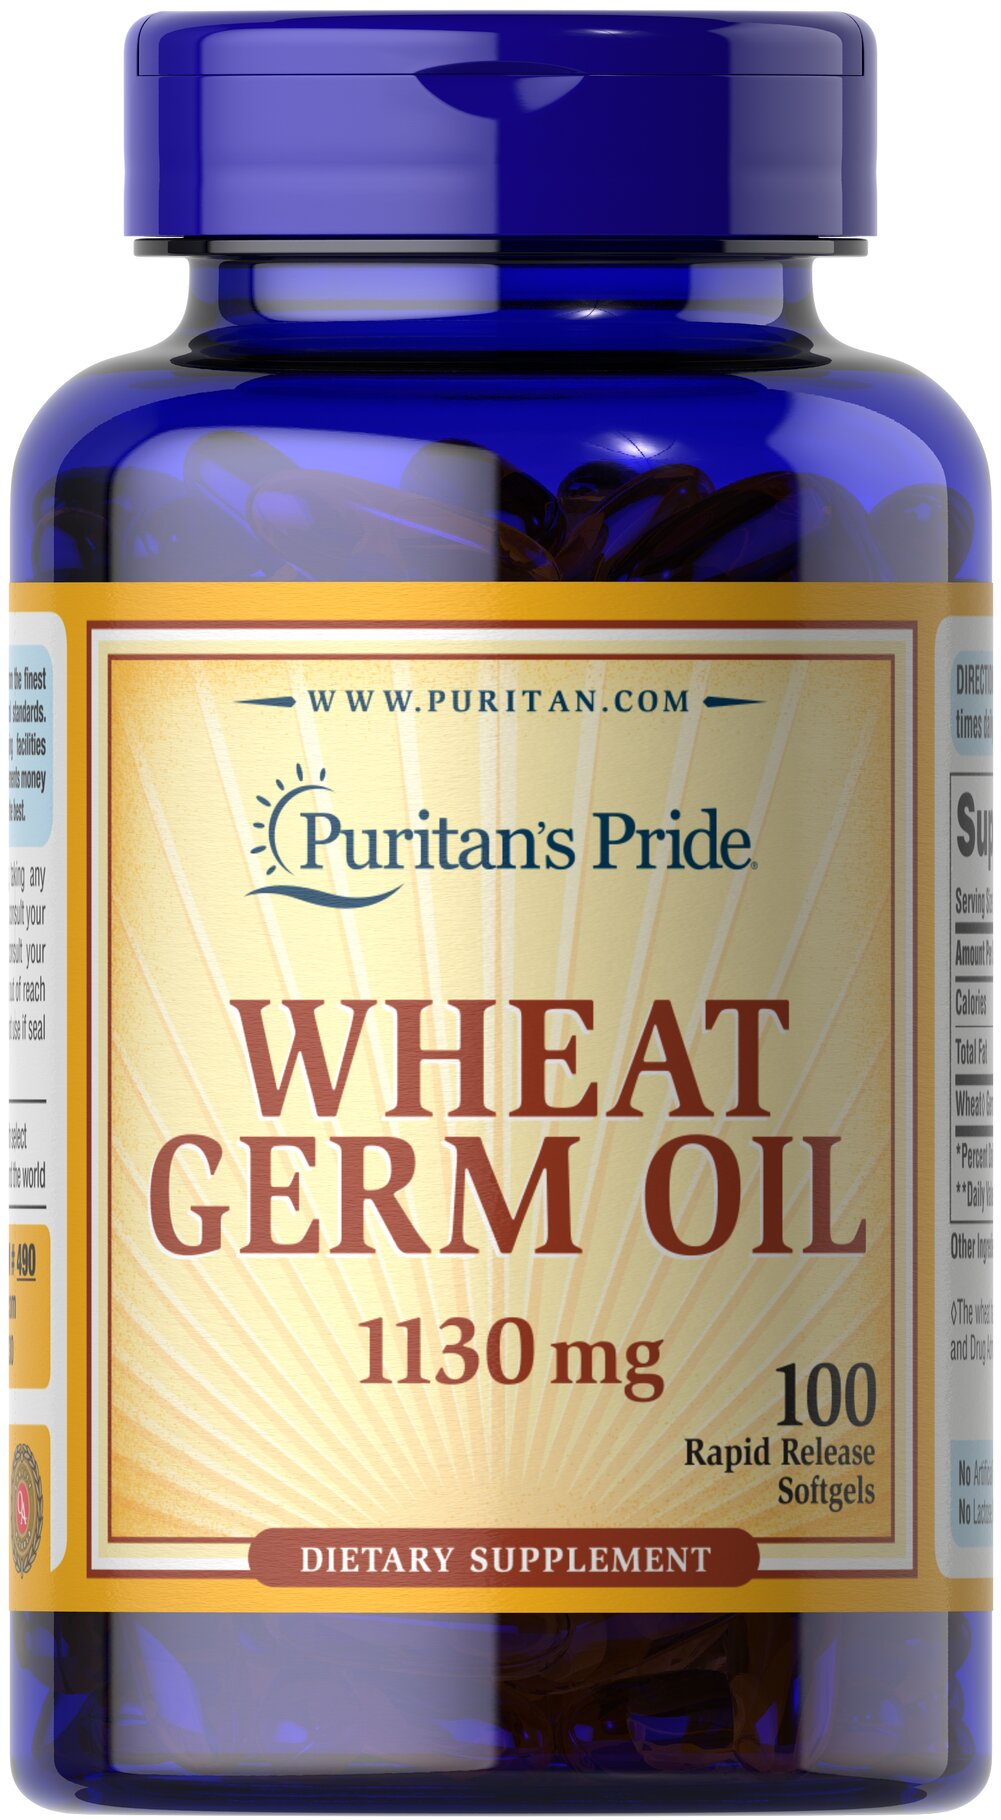 Wheat Germ Oil 1130 mg <p>Wheat Germ Oil is drawn from the heart of the finest wheat embryo by a refined cold pressing process.  The germ of wheat is a rich source of vitamin E, B Complex, plus protein factors.  Each softgel contains (1130 mg) Wheat Germ Oil.</p> 100 Softgels 1130 mg $18.49